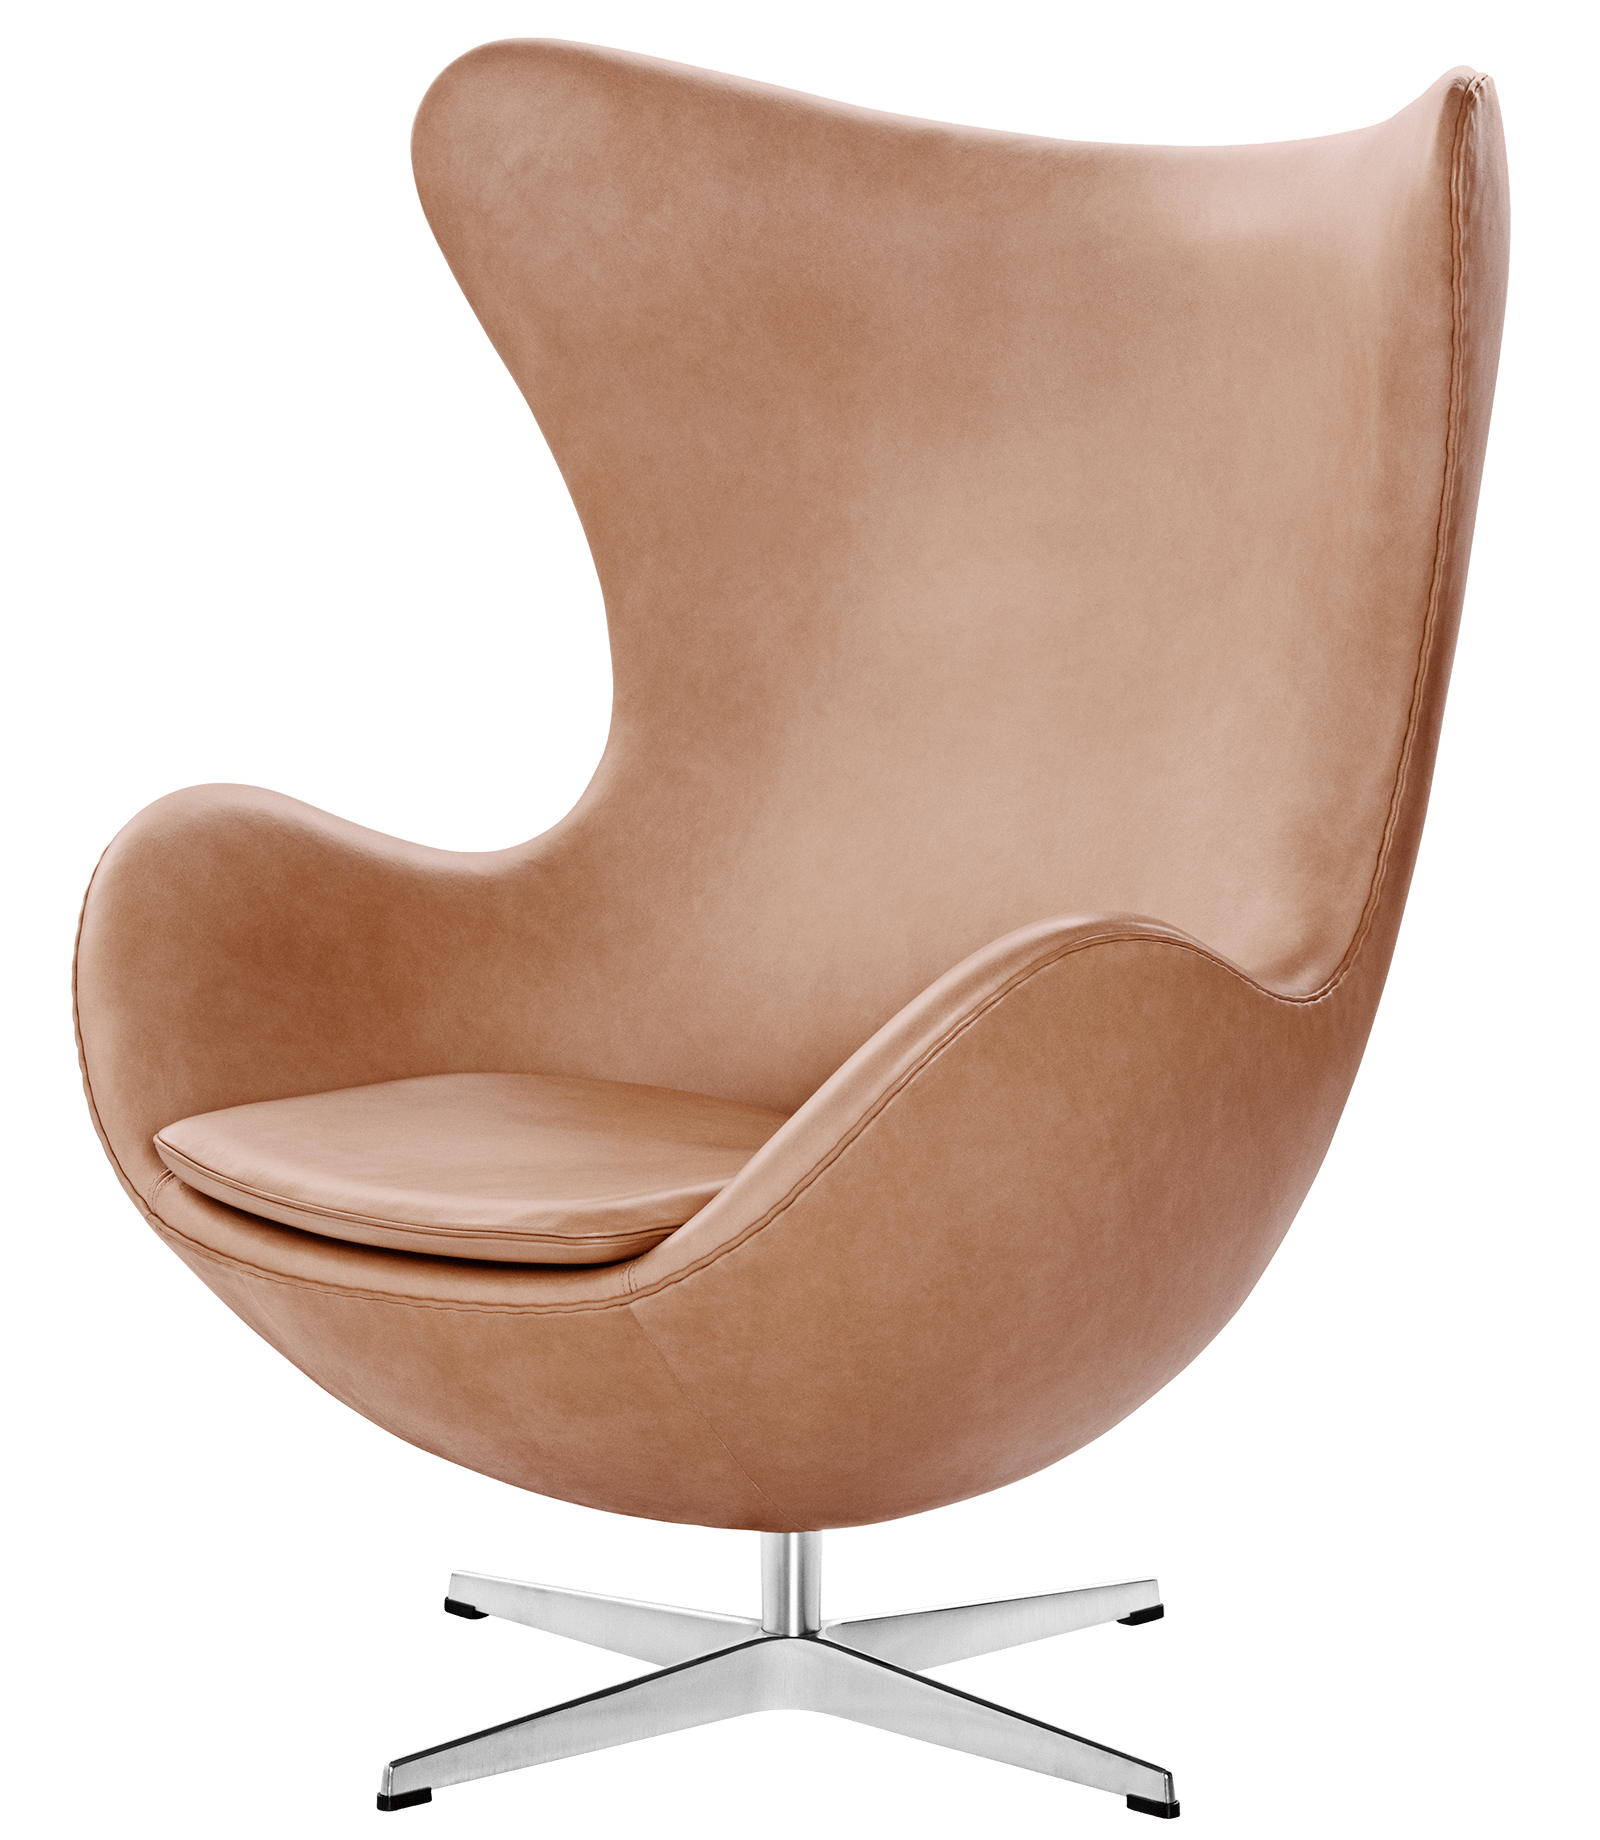 Armchair drawing lounge chair. Egg easy leather arne